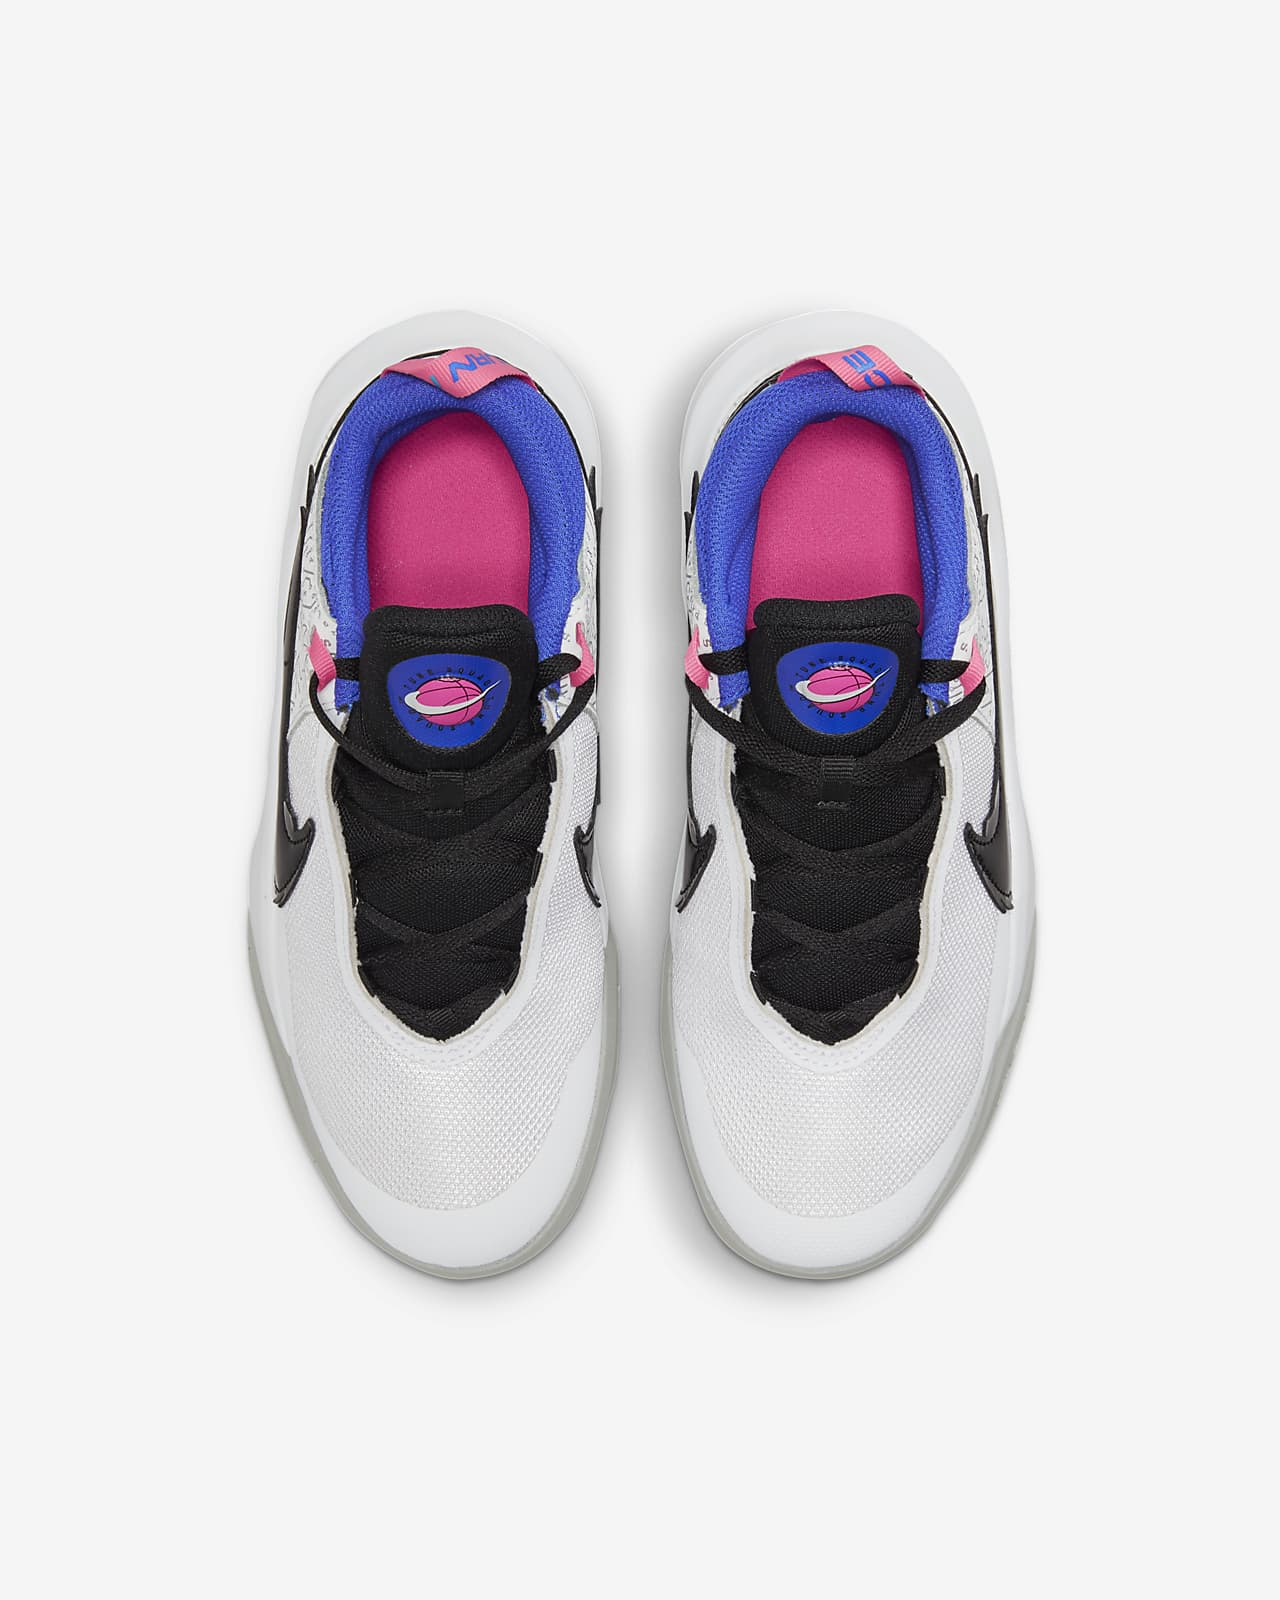 Free returns for 365 days at zappos! Nike Team Hustle D 10 SE x Space Jam: A New Legacy Older ...